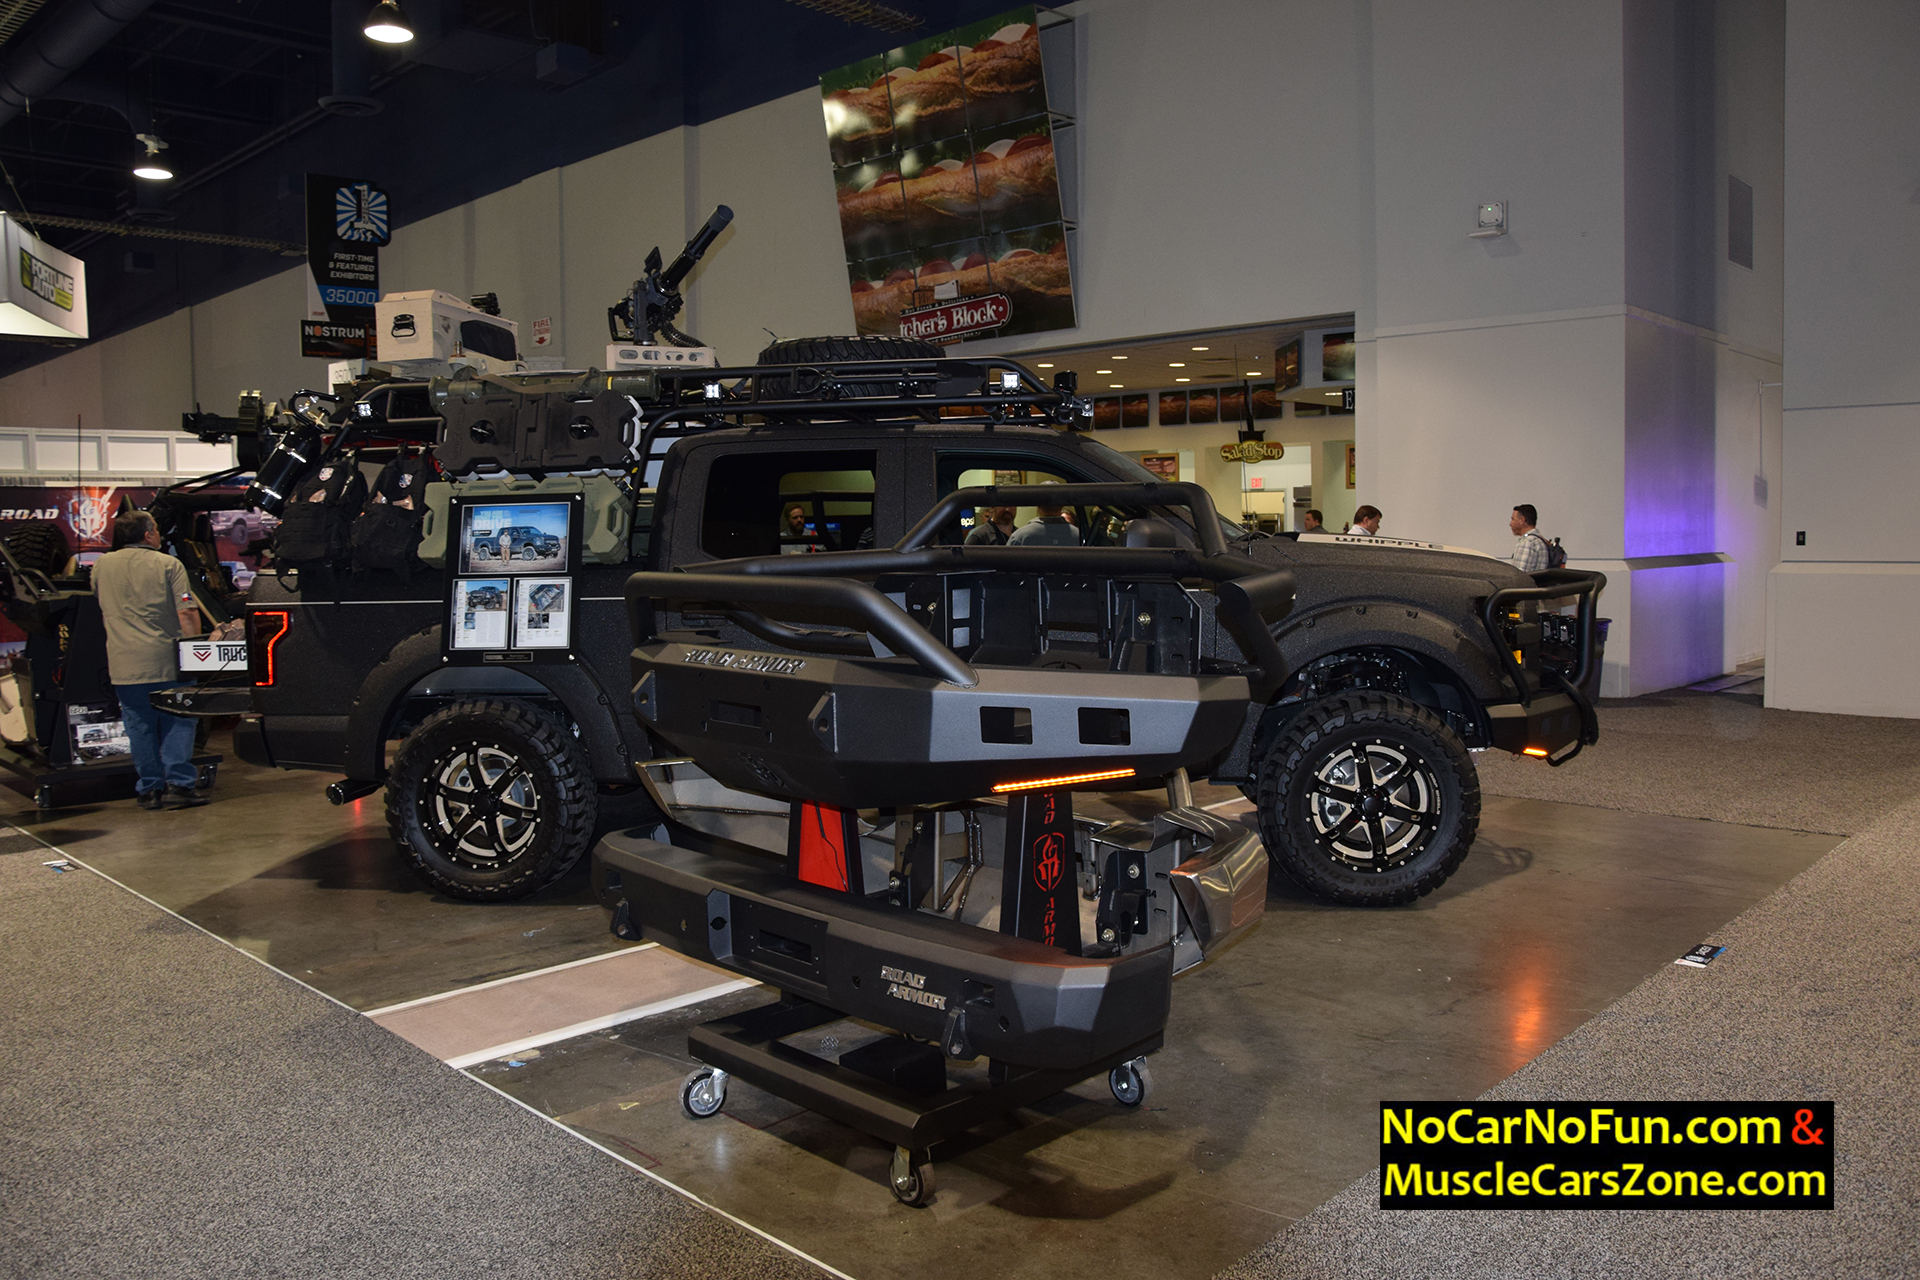 Ford Road Armor Truck With Machine Gun On Top 2015 Sema